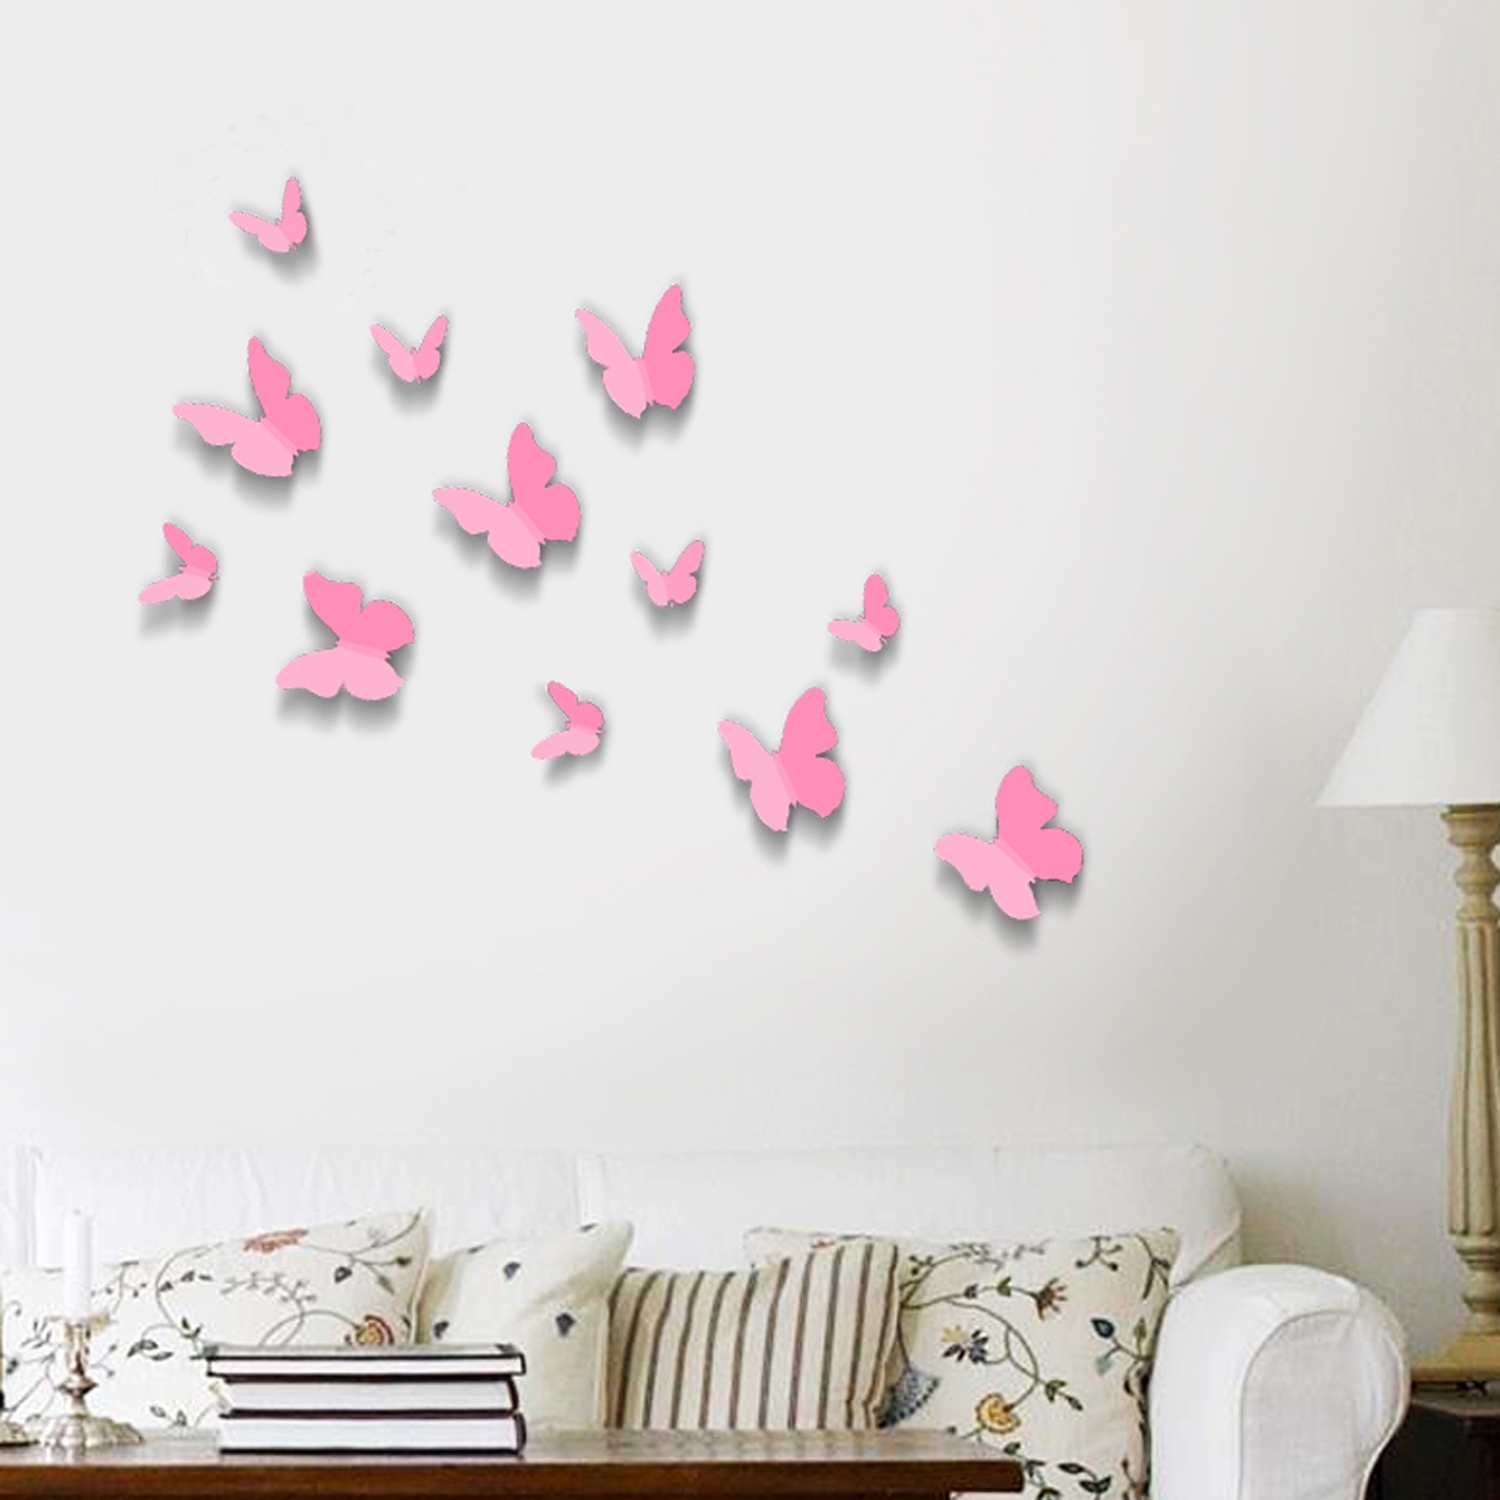 Most Popular Butterflies 3D Wall Art Regarding Pink 3D Butterflies Wall Art Stickers (View 11 of 15)